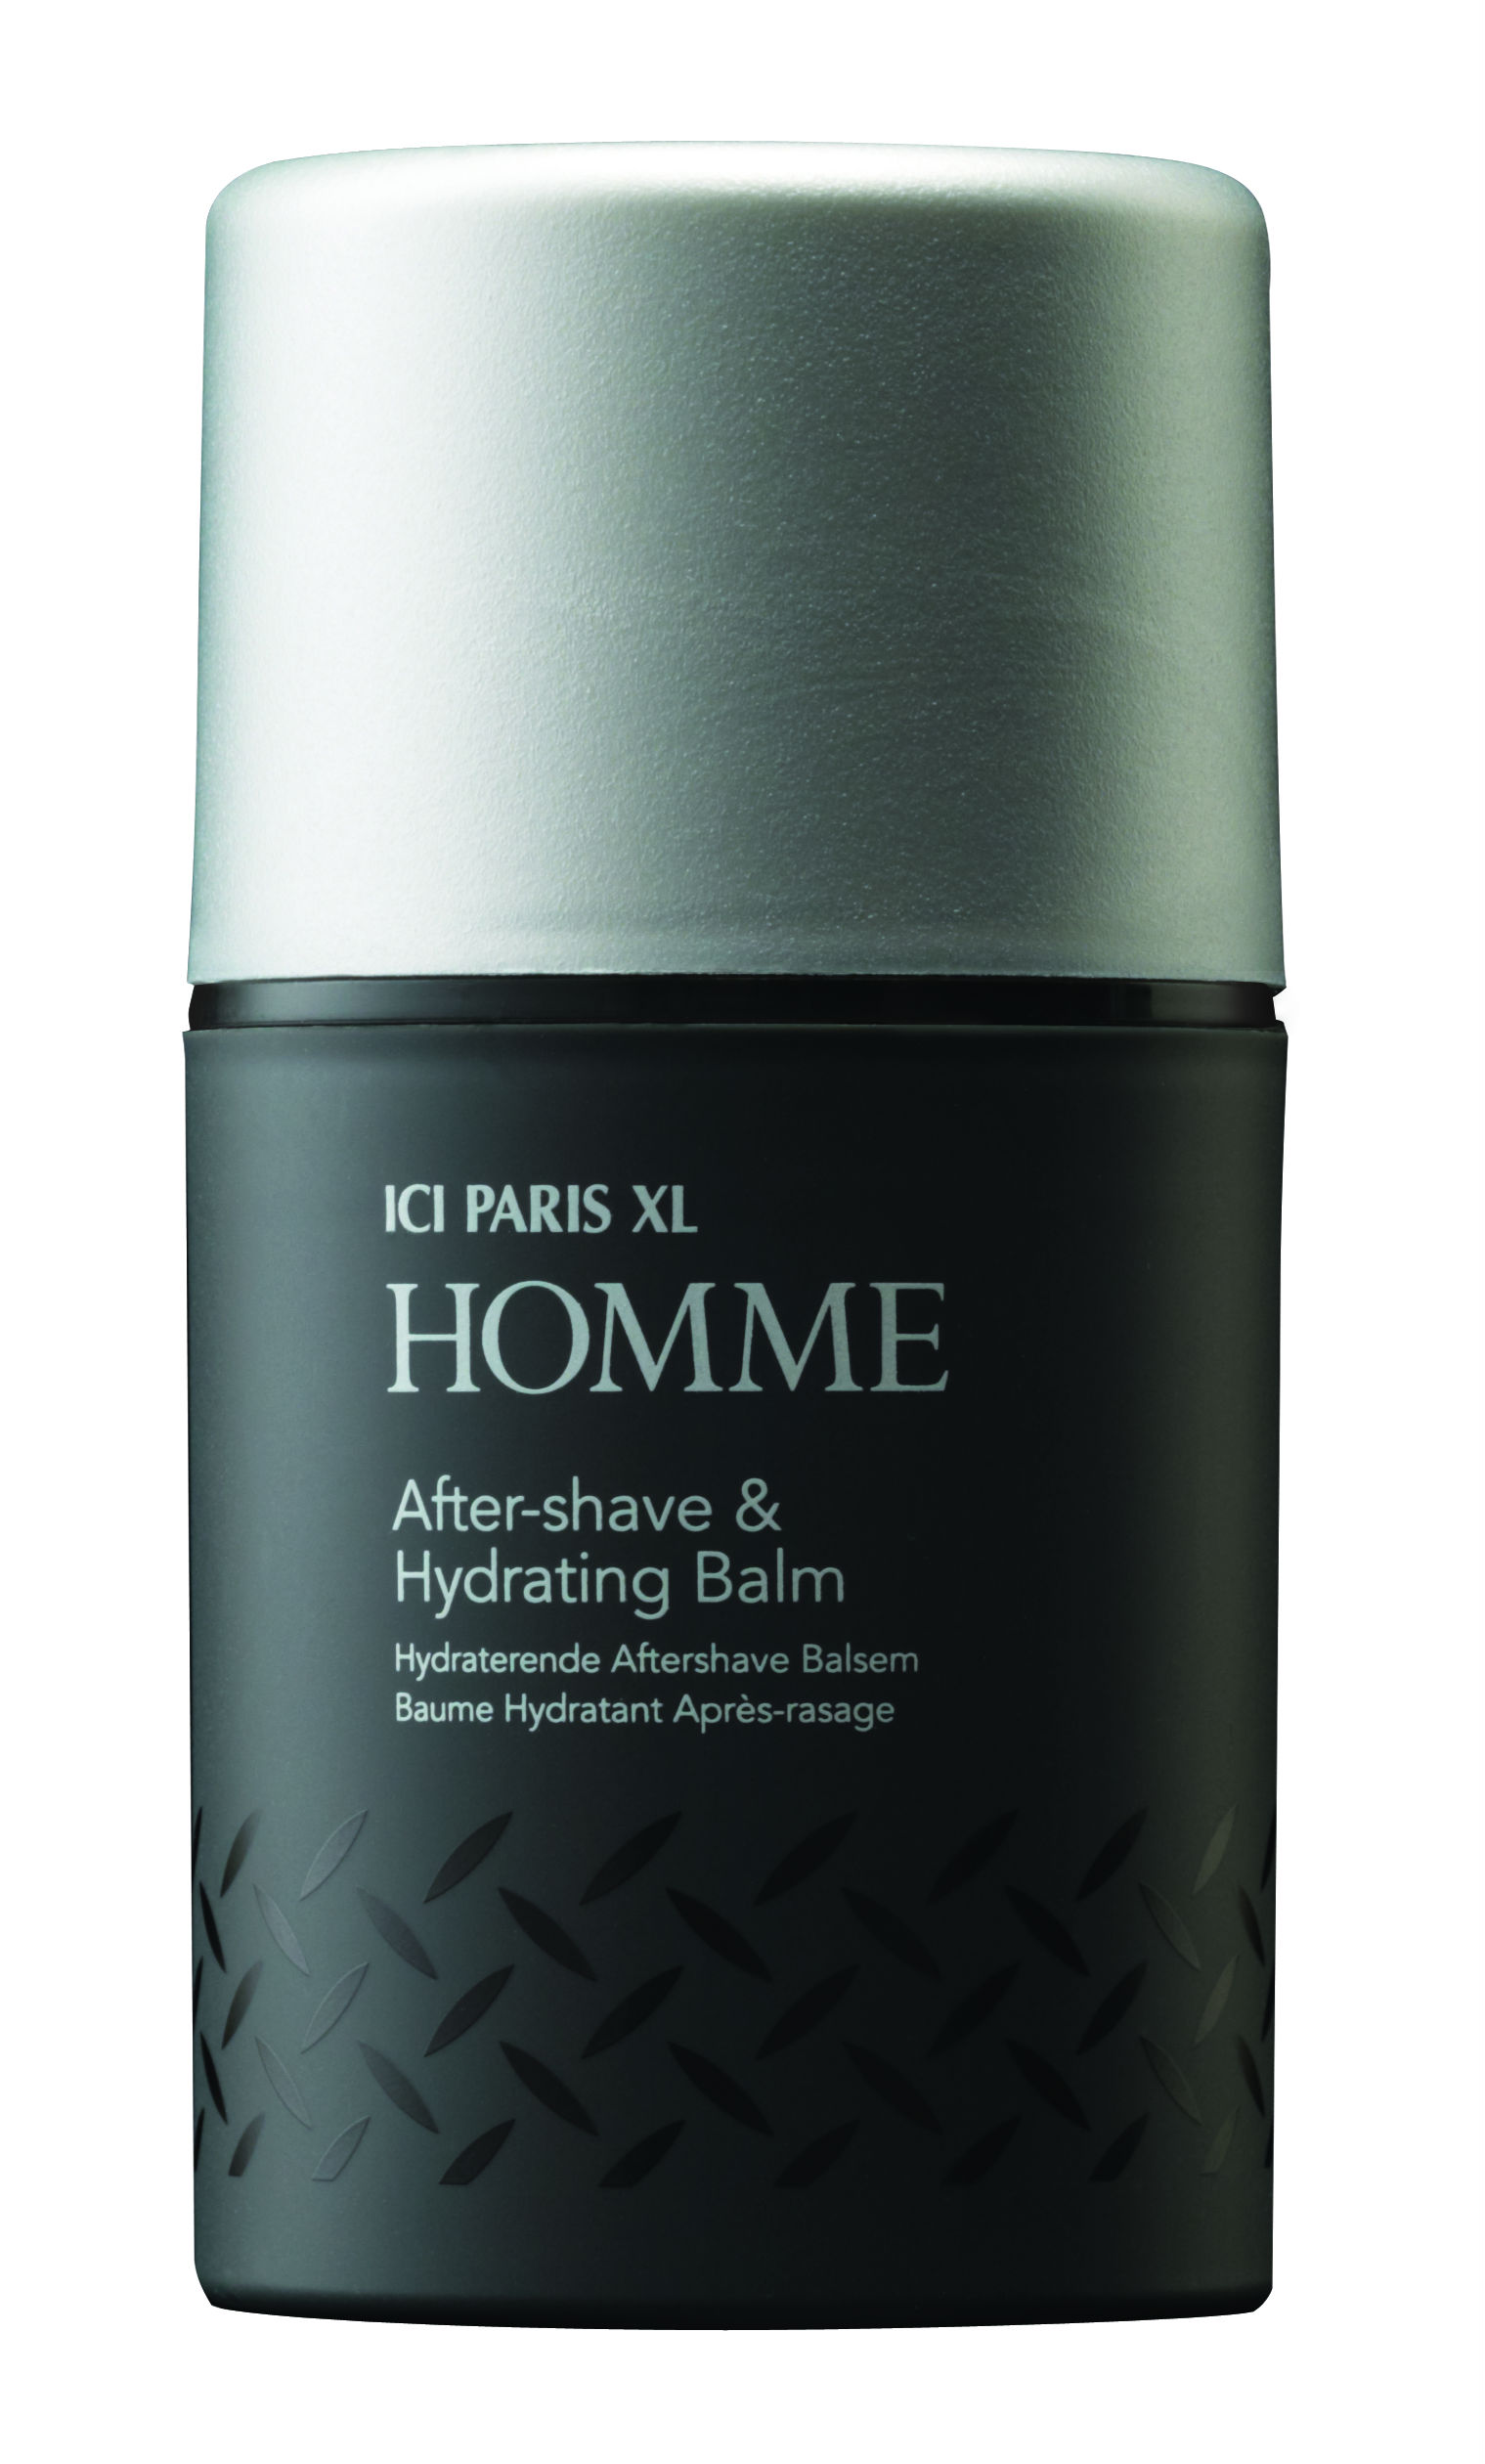 ICI PARIS XL HOMME -After shave hydrating balm-EUR10